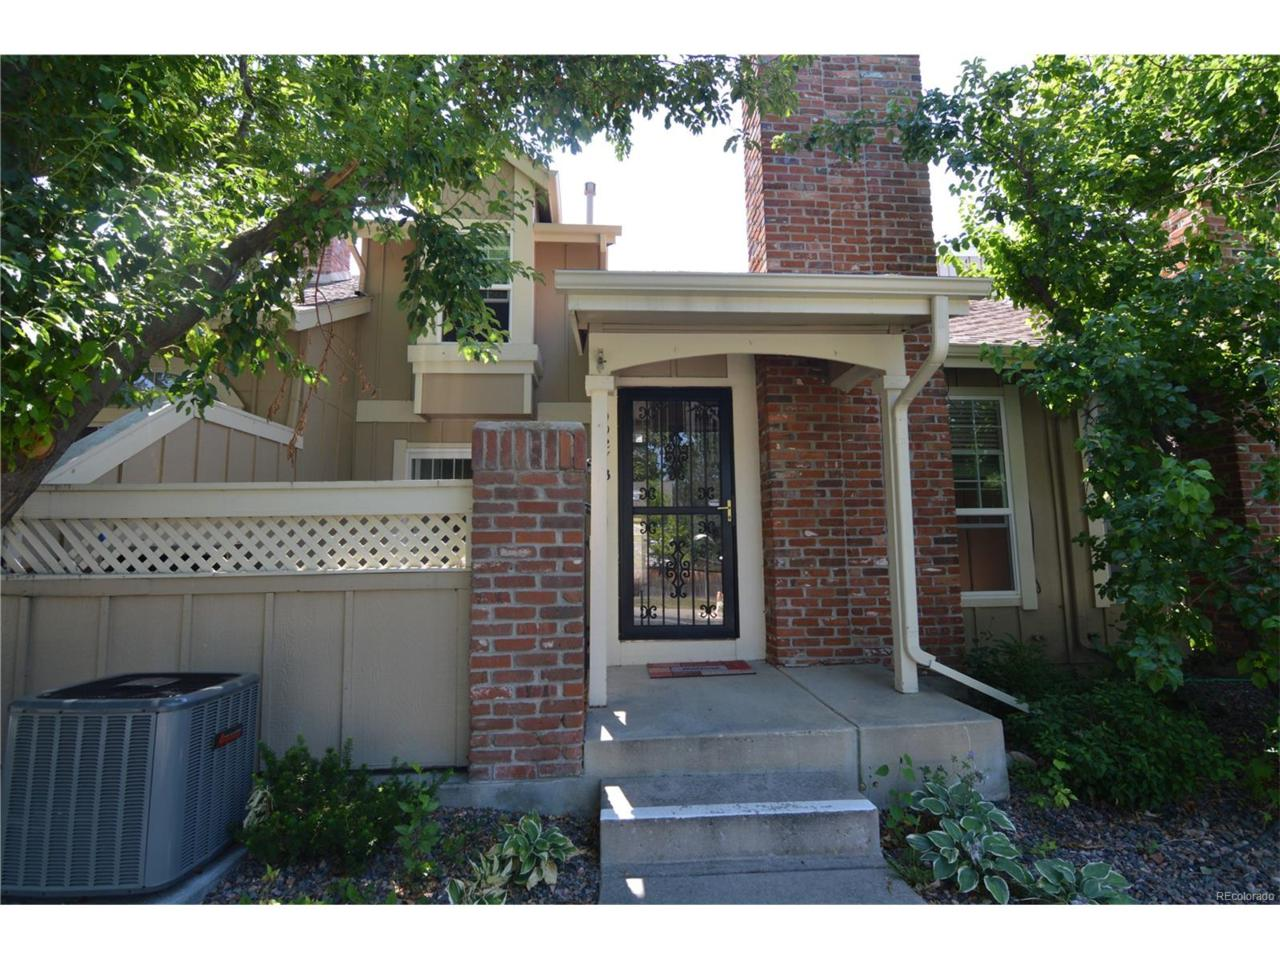 9927 Grove Way B, Westminster, CO 80031 (MLS #2581108) :: 8z Real Estate